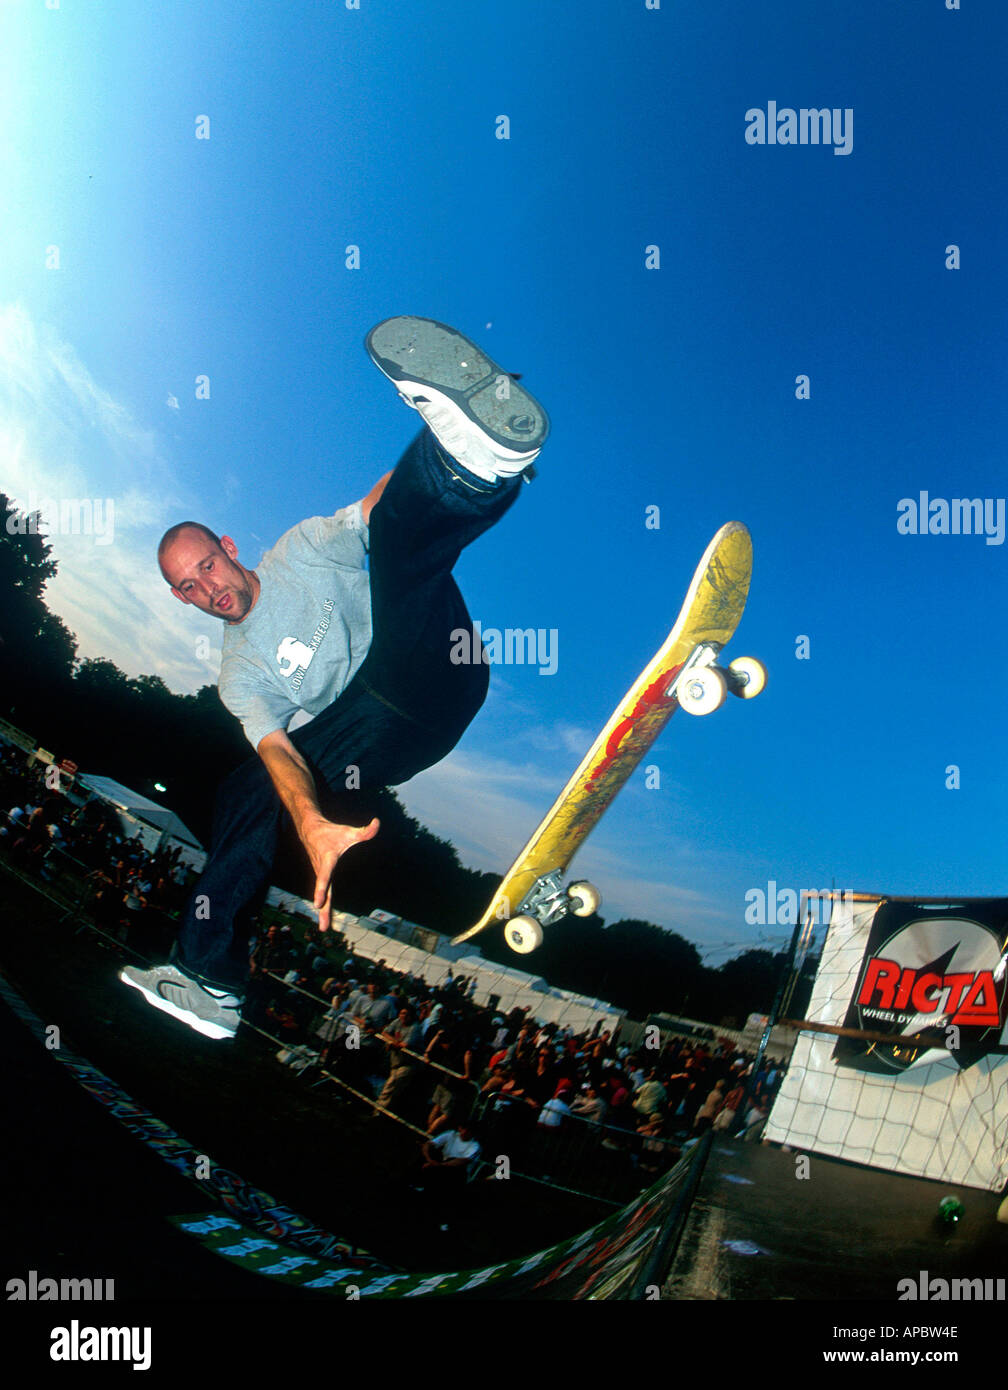 Simon Skip at the Sprite Urban Games Clapham Common London - Stock Image